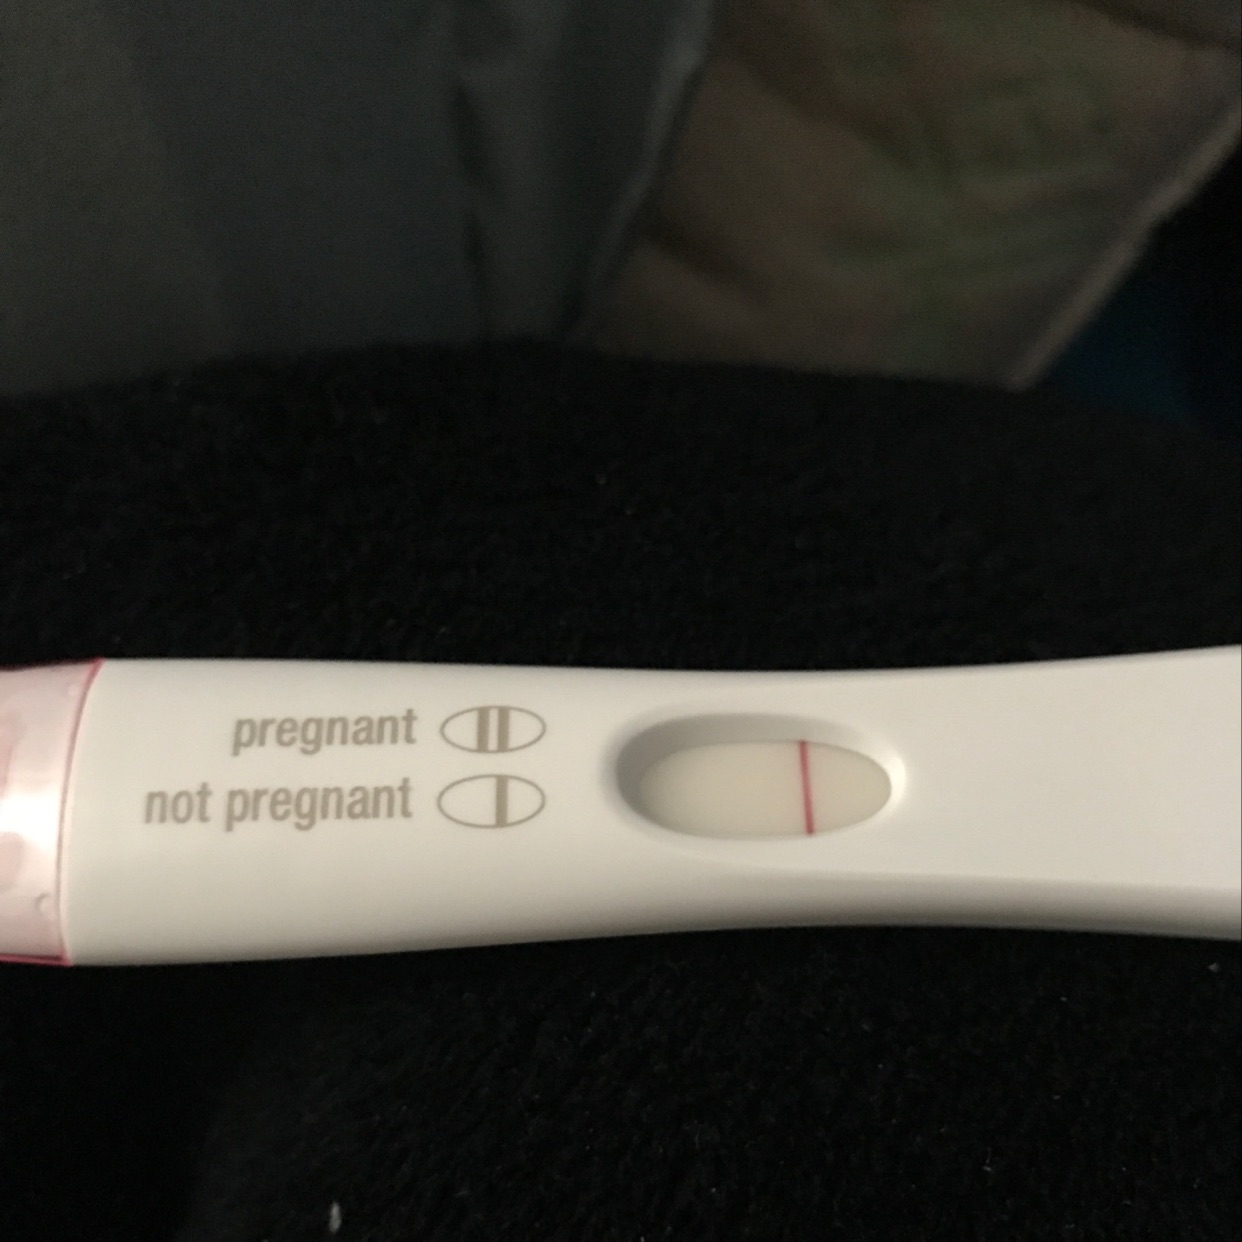 8 Days Late And No Sign Of Af And No Soret No Cramp But Backache So Whats Going On Update I Got A Positive Ovulation Today And Still No